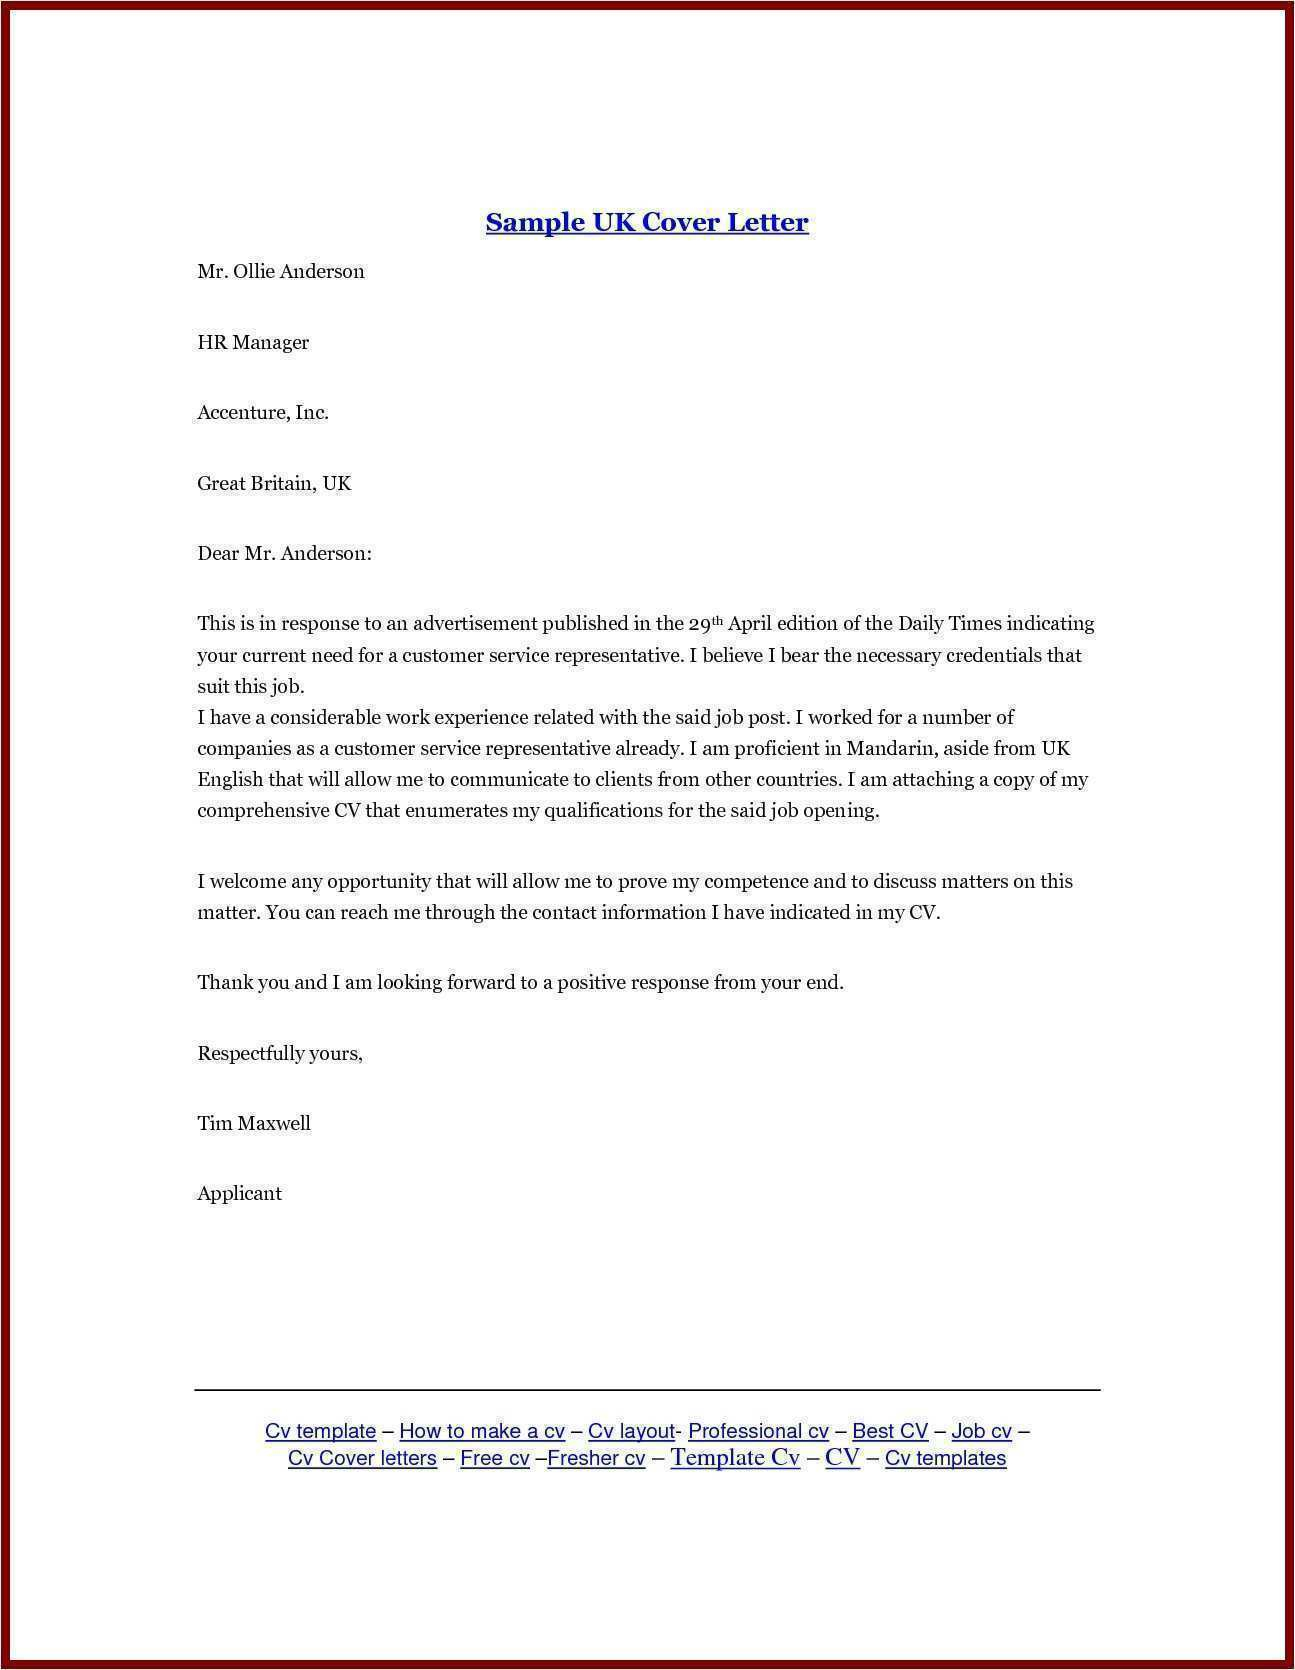 unique cover letter template example-Cover Letter Example for Job Opening New Bank Letter format formal Letter Template Unique bylaws Template 3-a